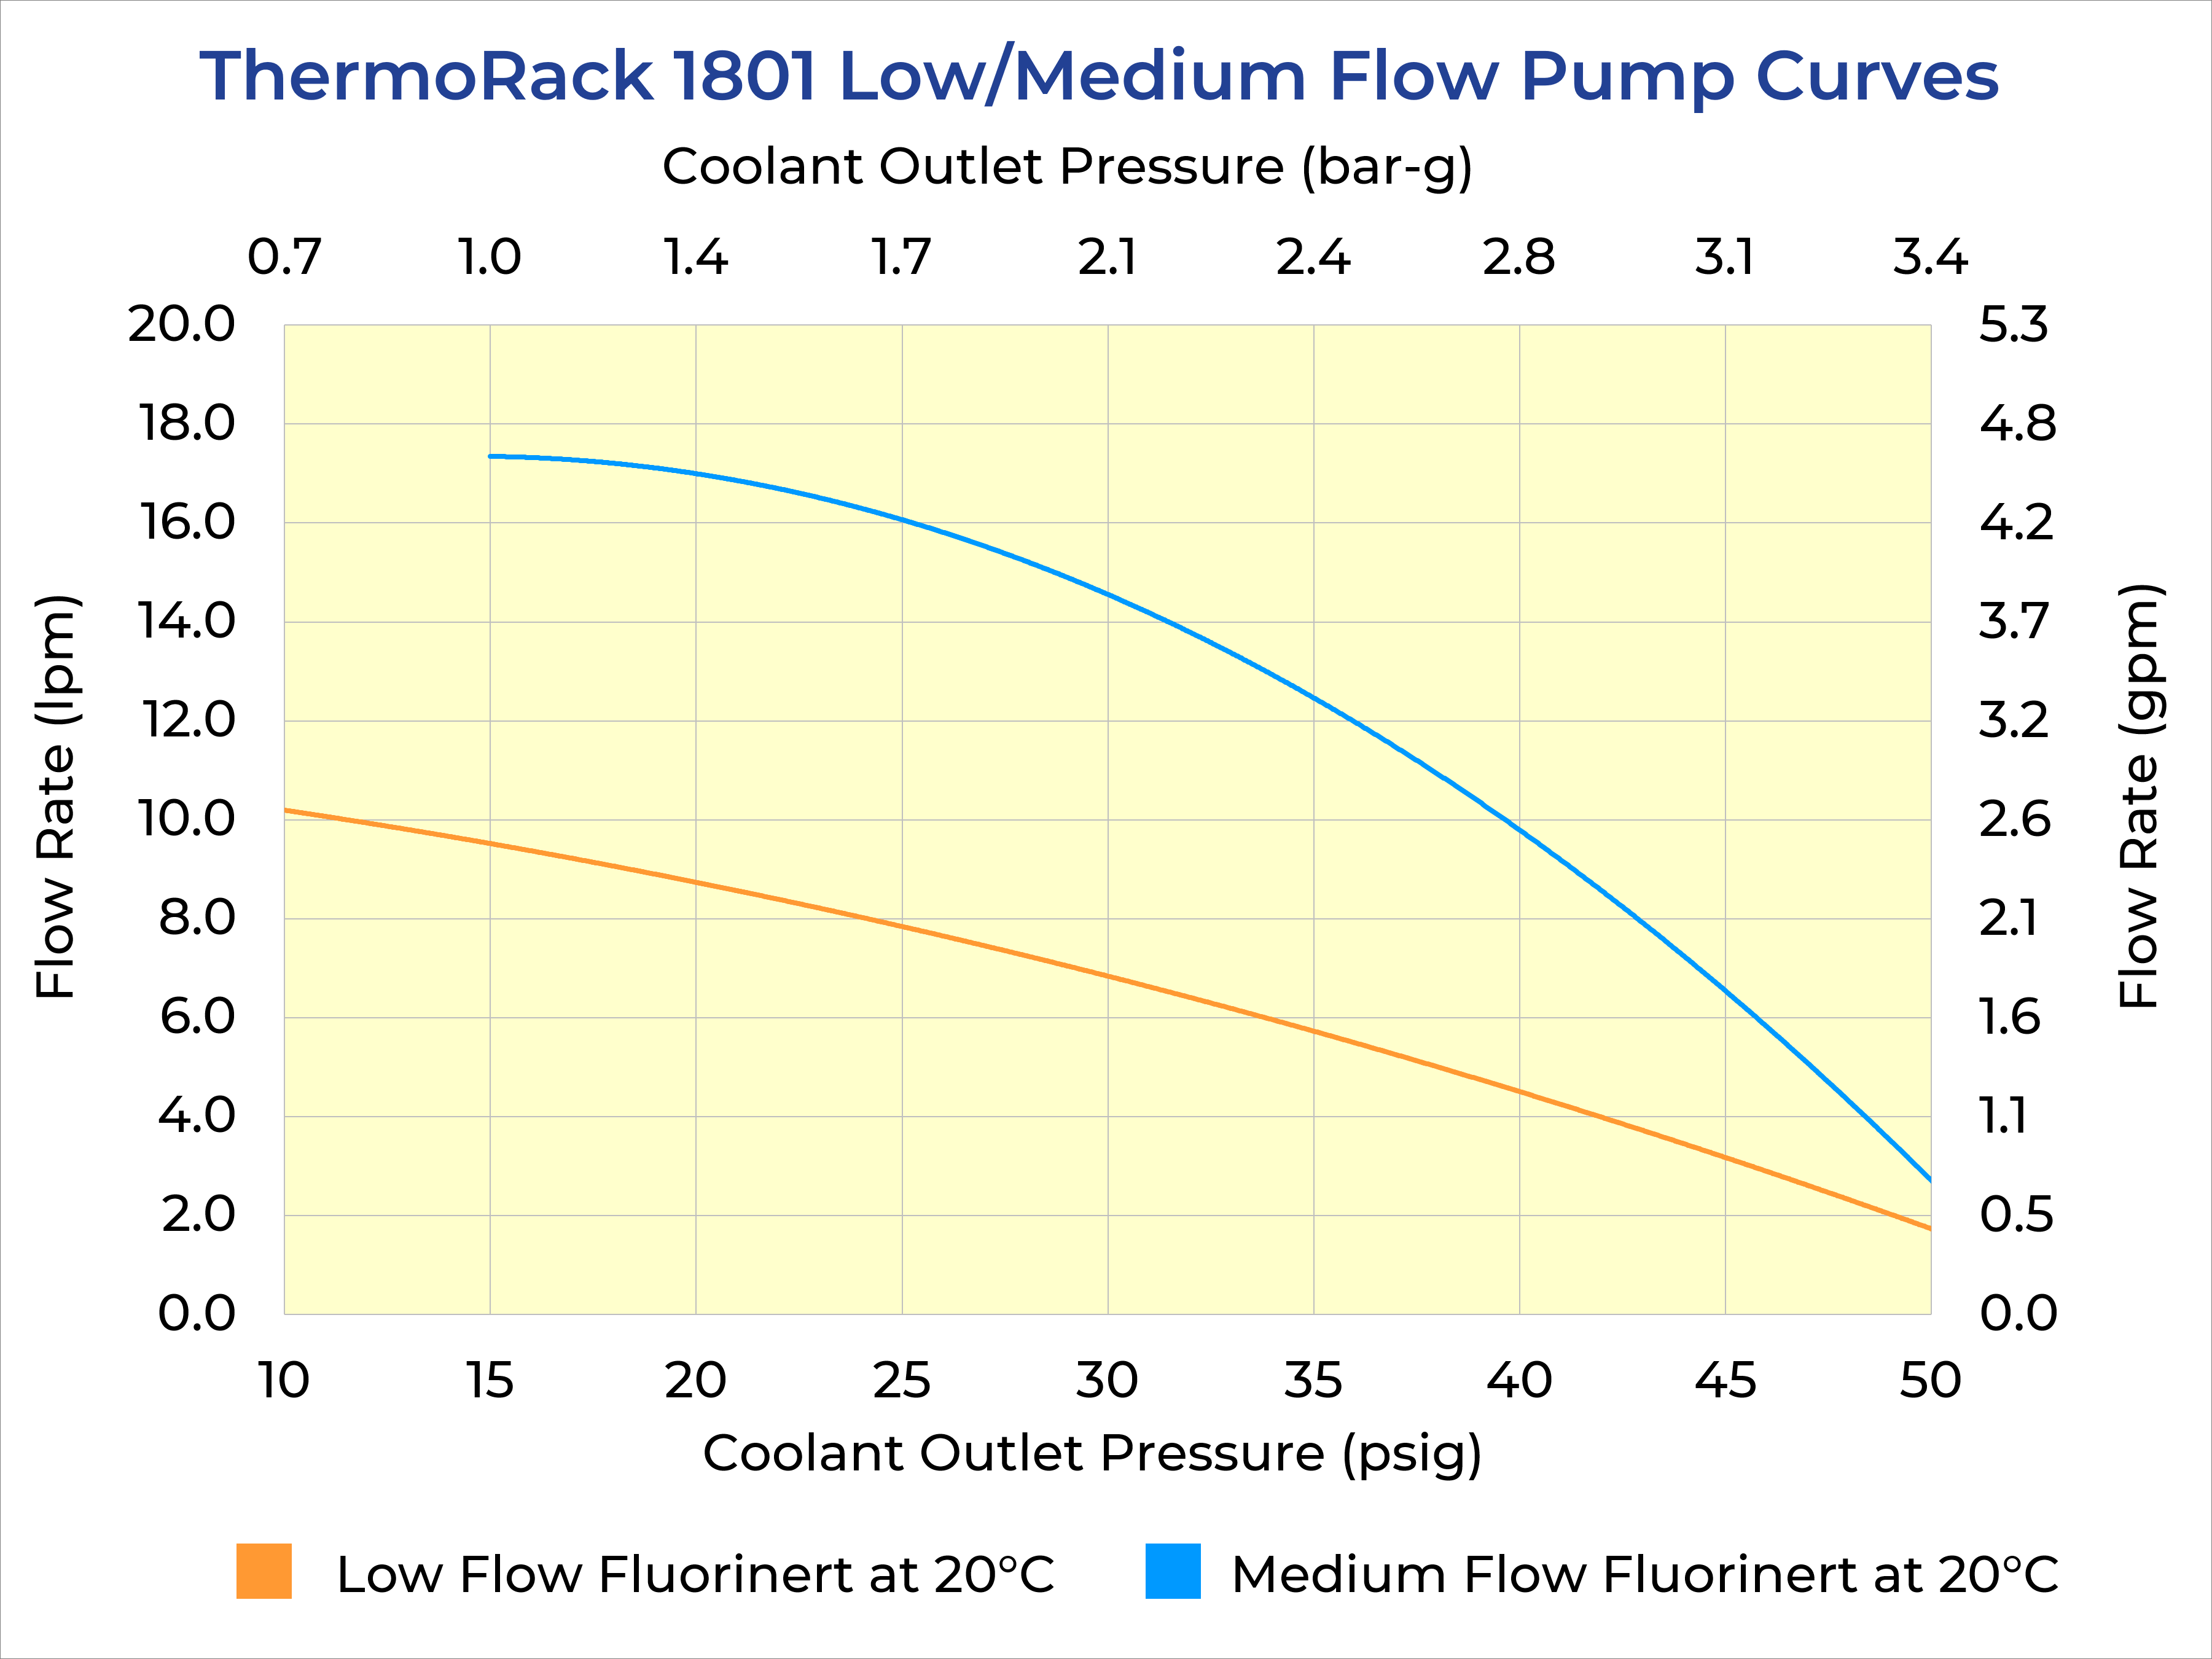 ThermoRack 1801 Pump Curves Low - Med Flow